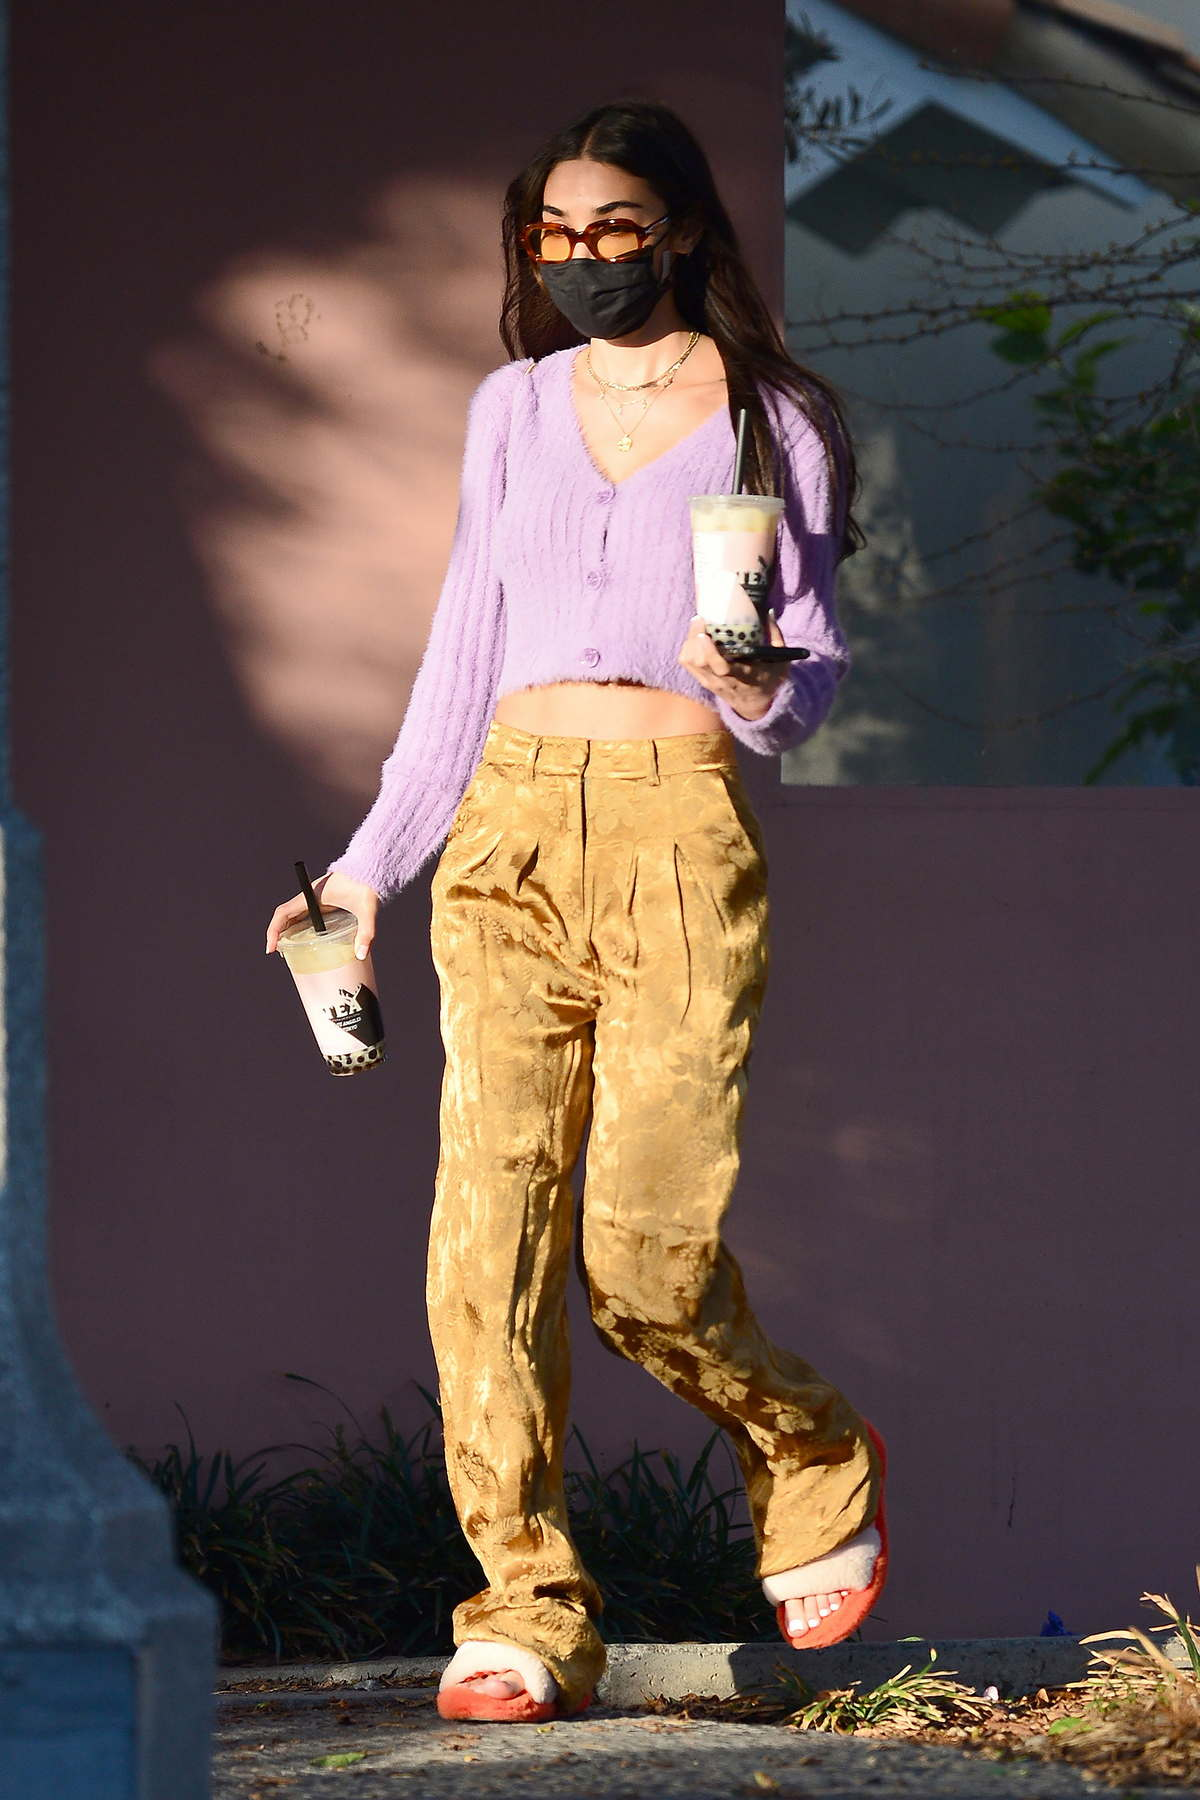 Chantel Jeffries flashes her toned midriff as she leaves Alfred's in West Hollywood, California